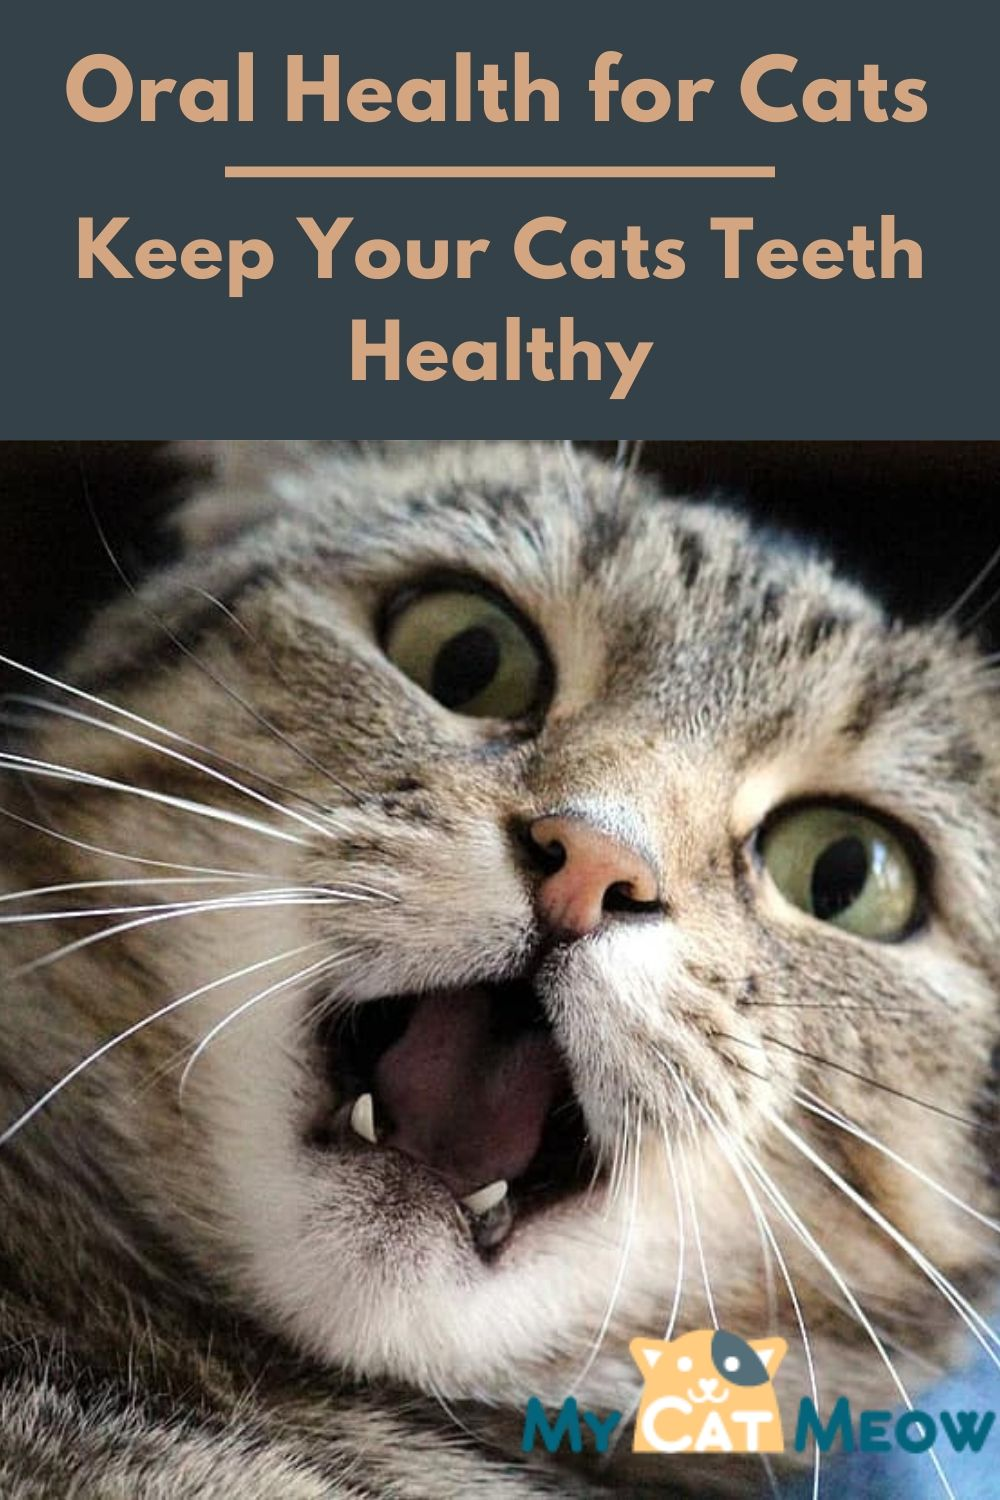 Oral health for cats